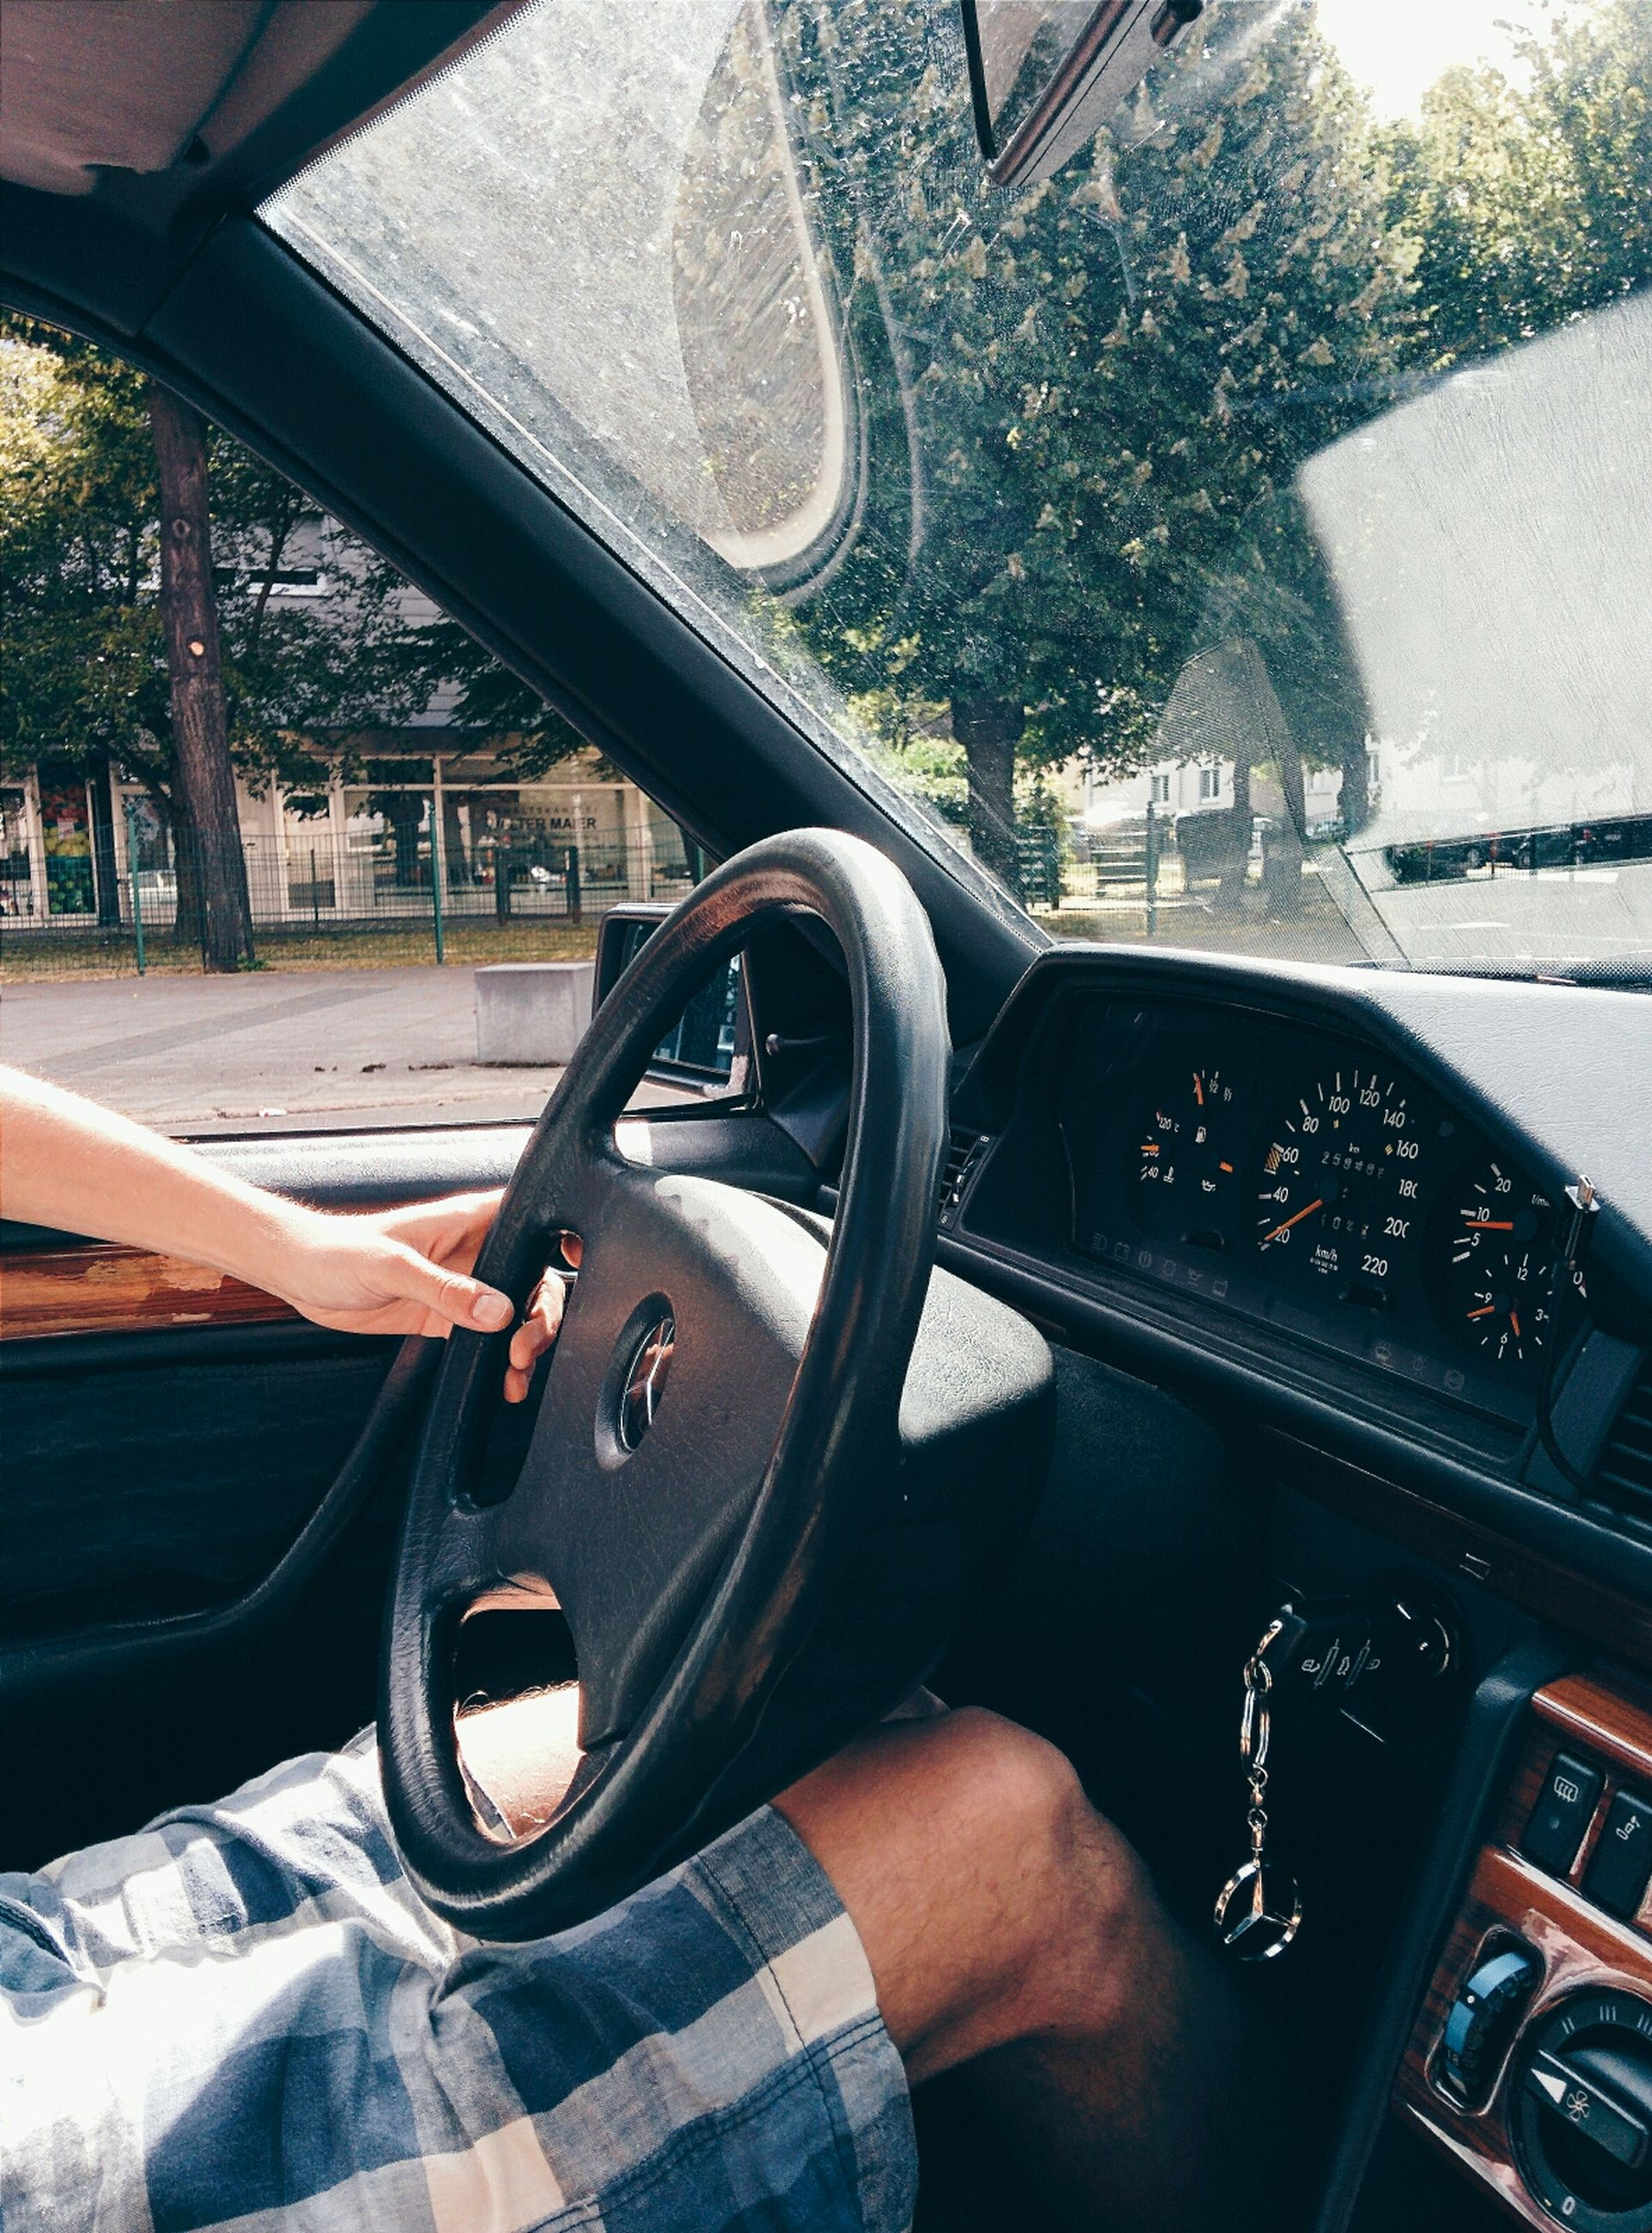 transportation, land vehicle, mode of transport, car, part of, tree, lifestyles, low section, car interior, travel, road, personal perspective, street, bicycle, cropped, vehicle interior, leisure activity